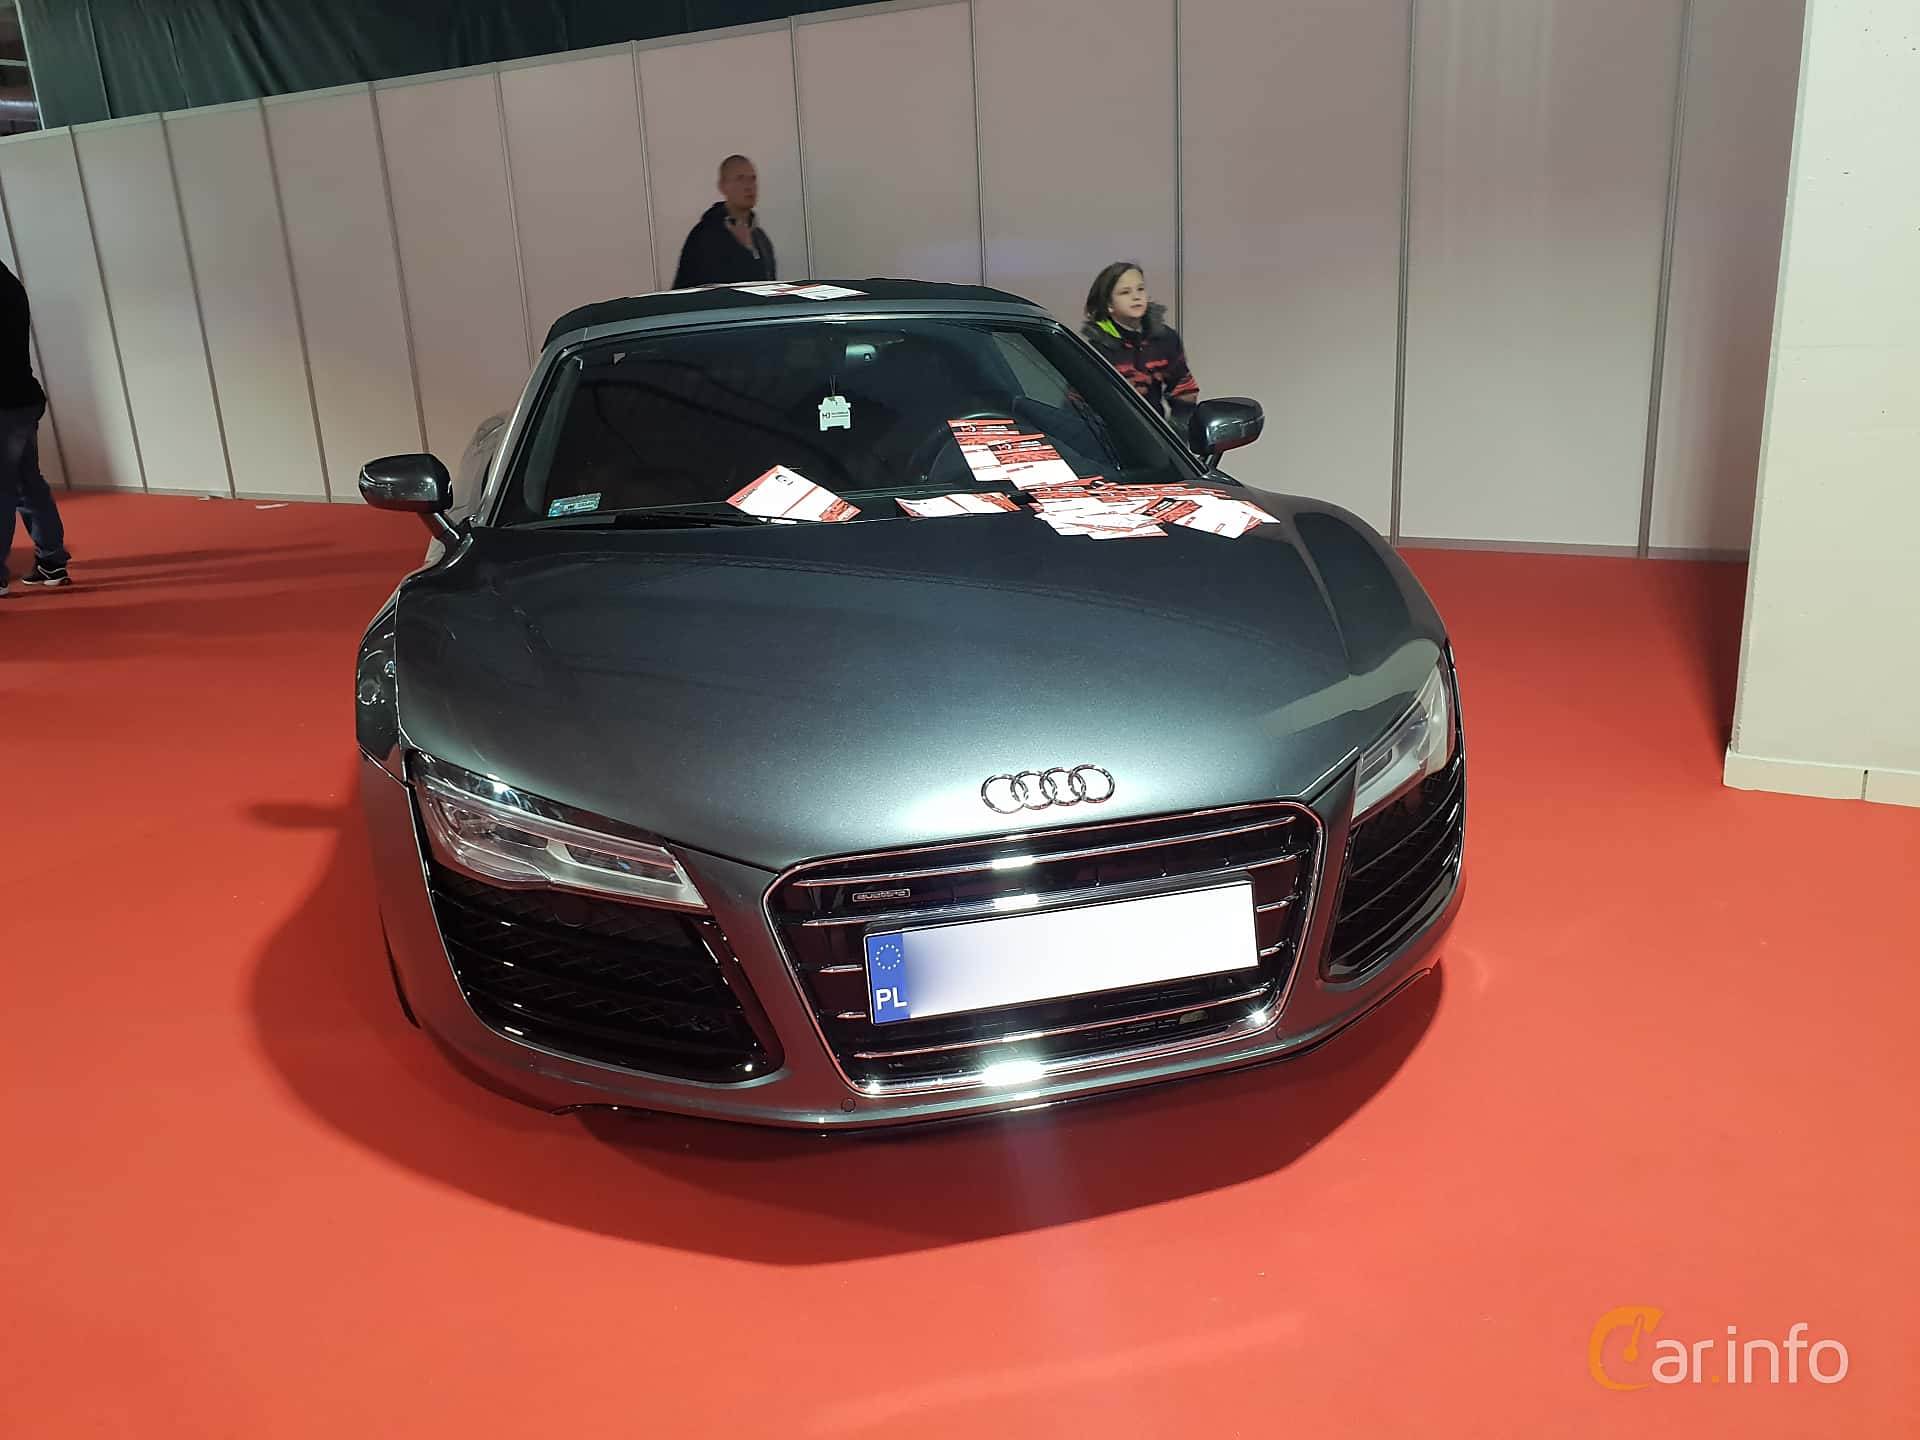 Front  of Audi R8 Spyder at Warsawa Motorshow 2018